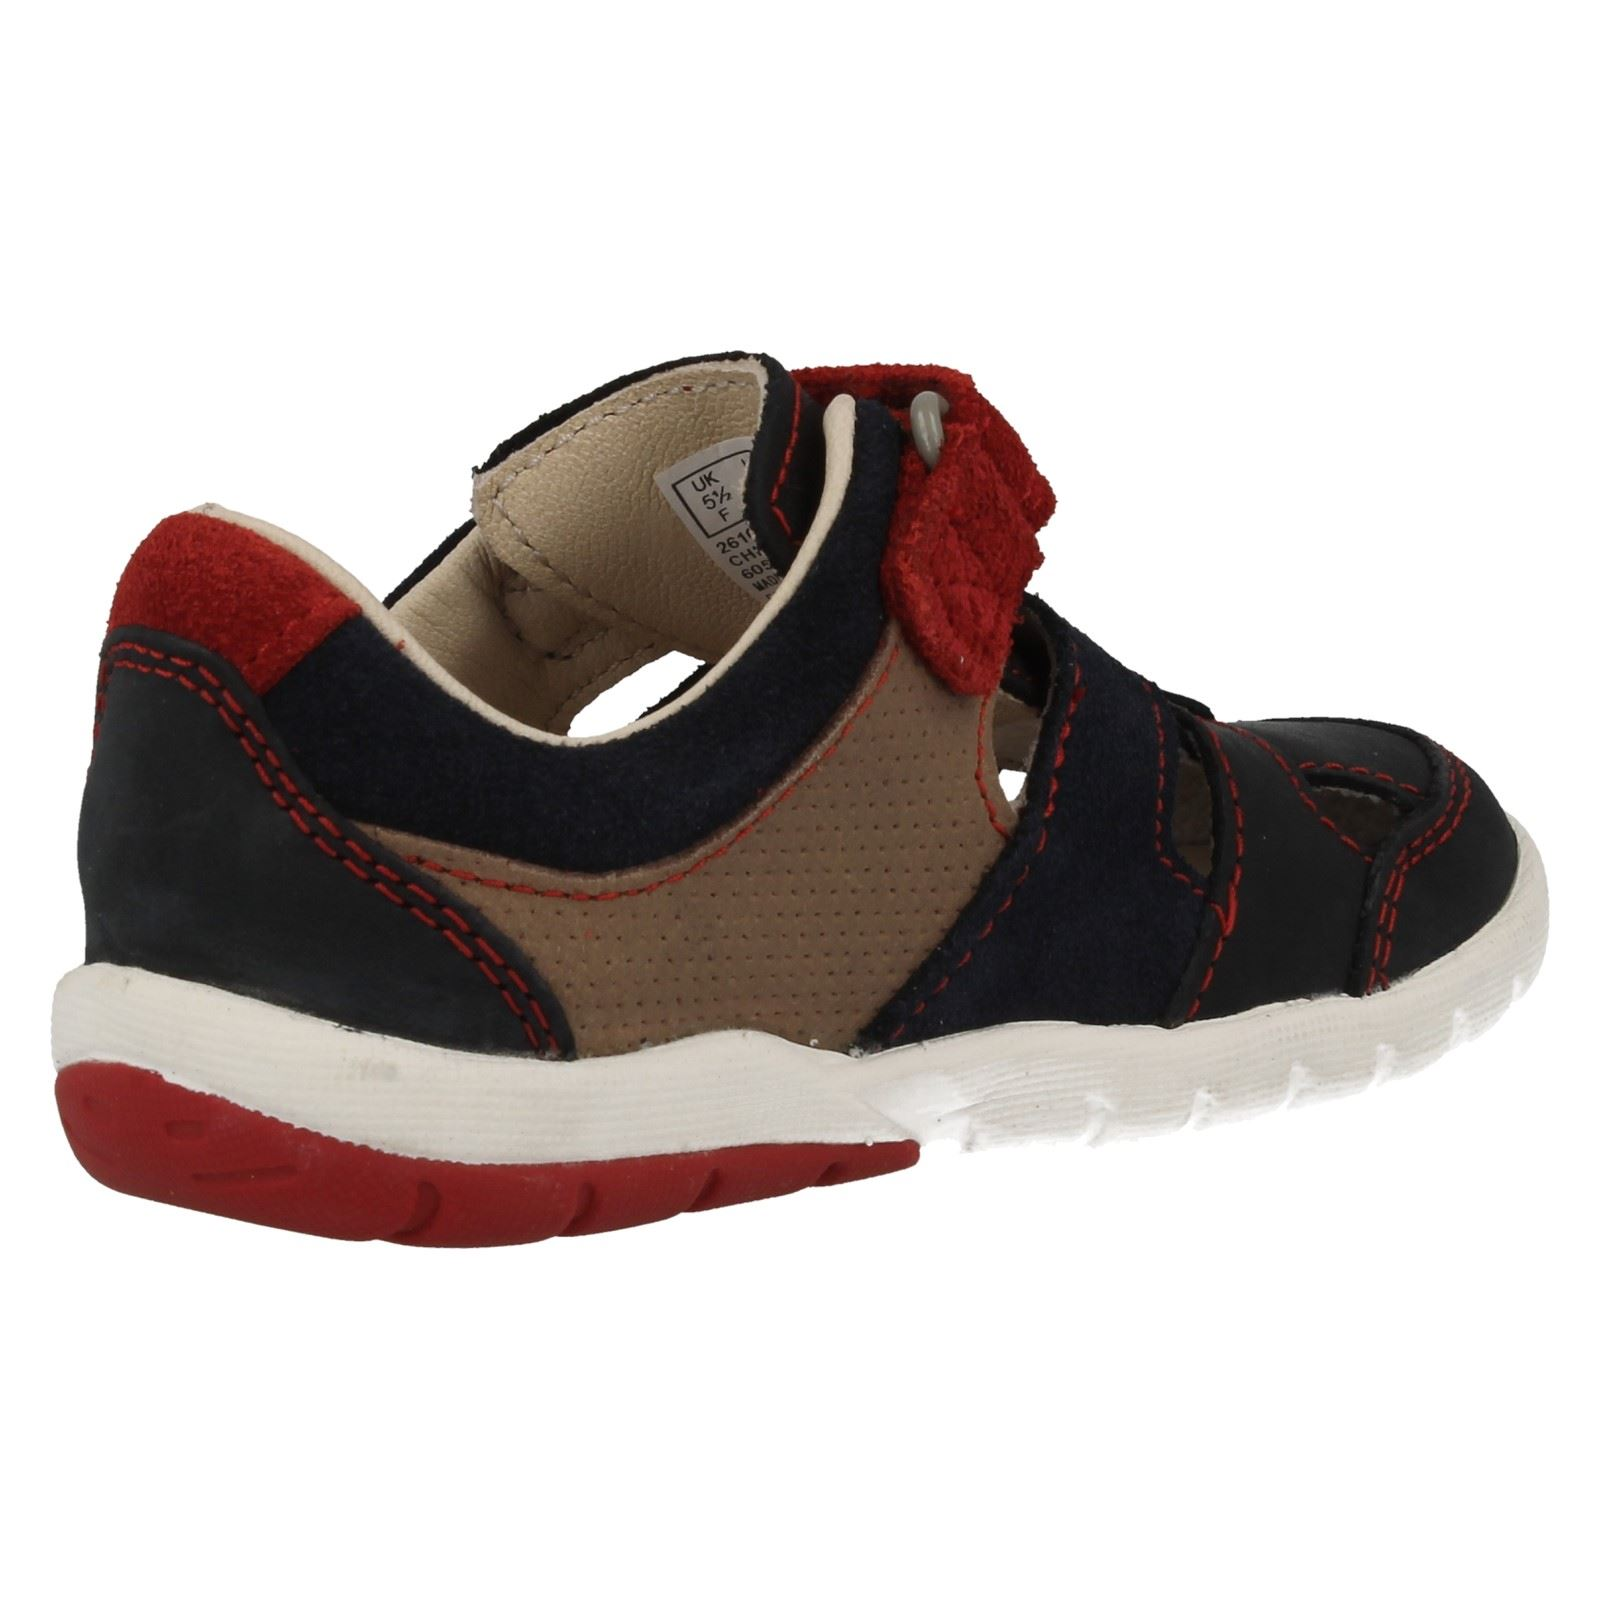 Infant Boys Clarks Closed Toe Vecro Sandals / Shoes - Softly Moon